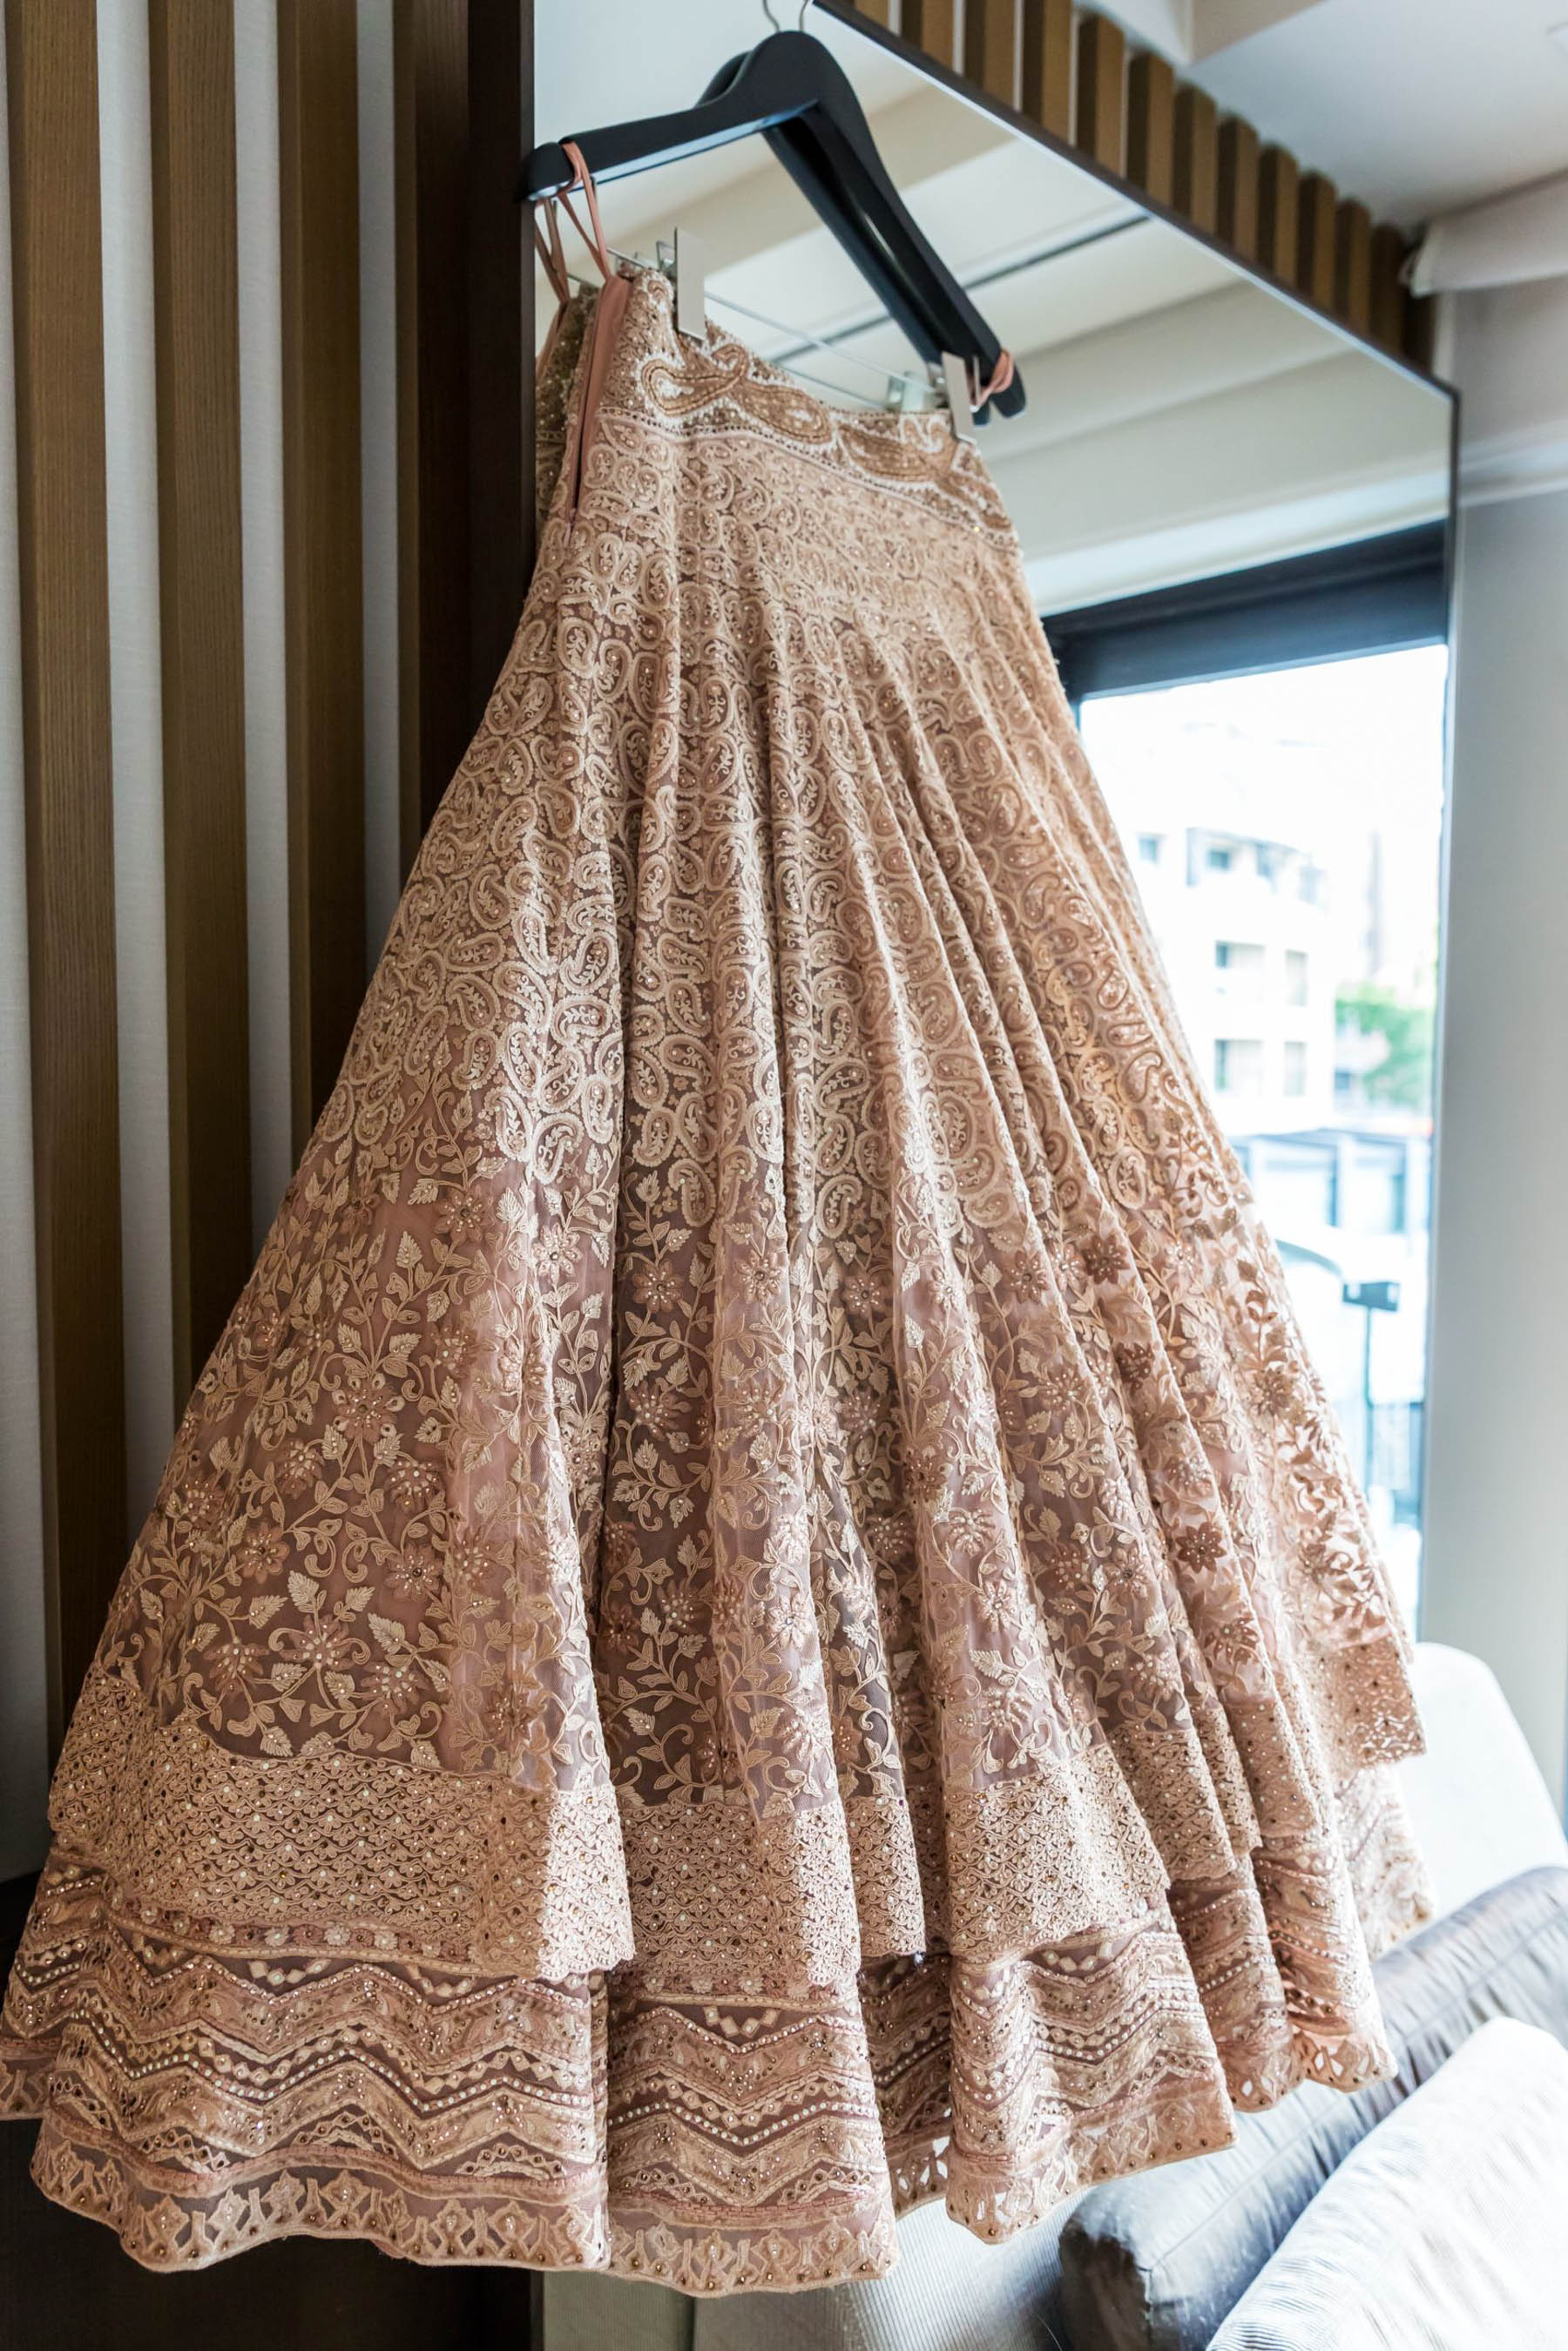 For the reception, Myura chose to wear a nude, gold colour, layered lehenga design from wedding lehenga experts, Frontier Raas.